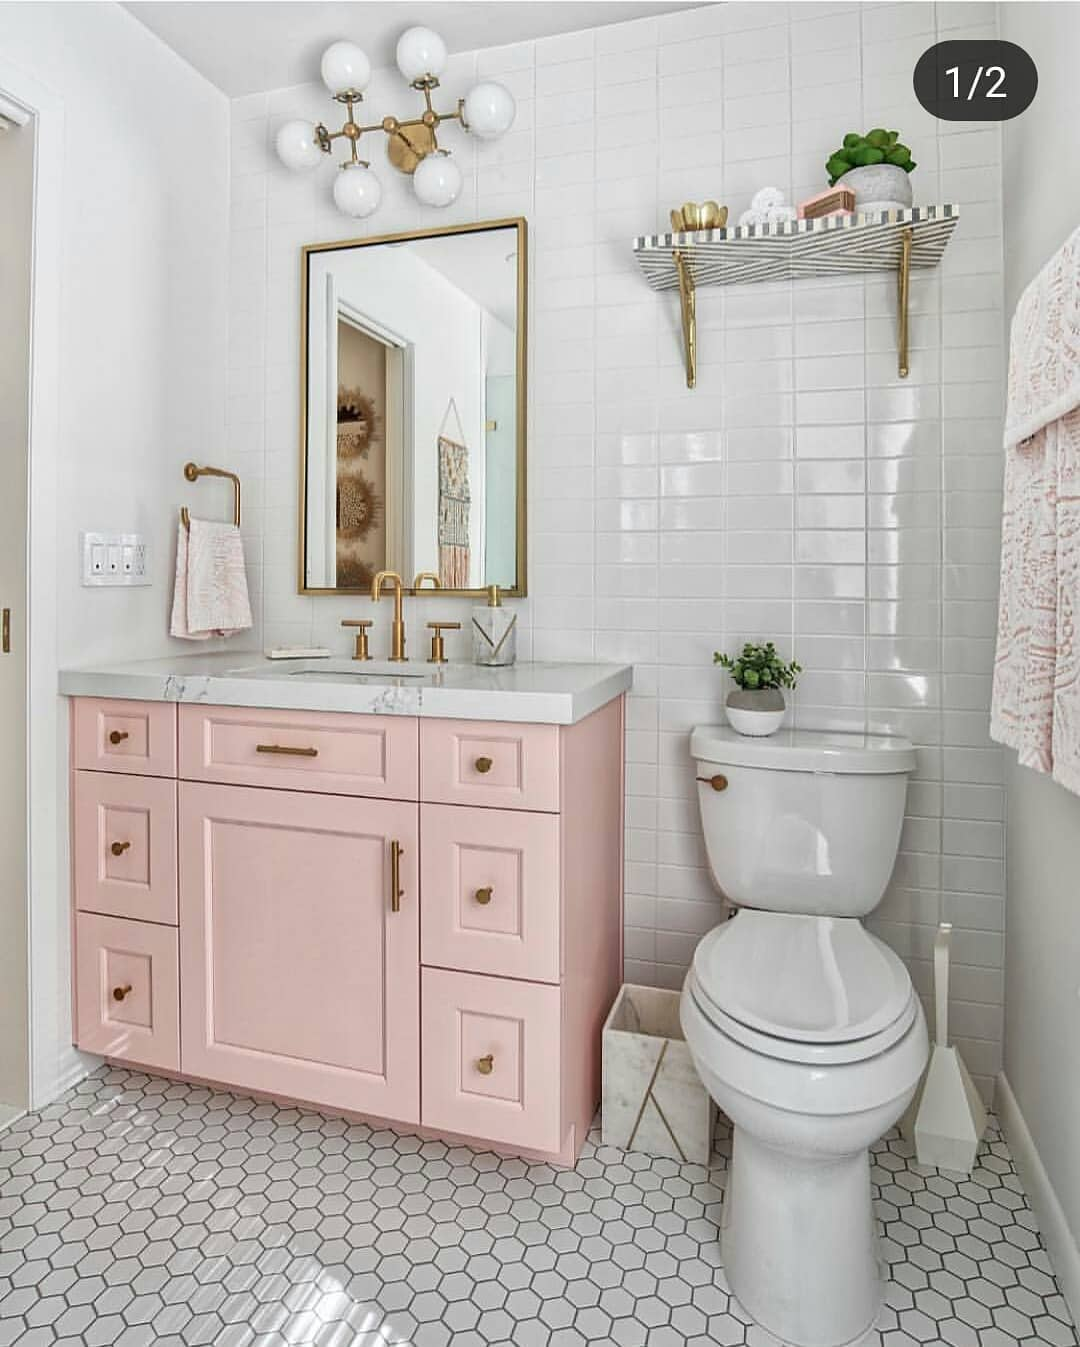 This Is The Most Beautiful Bathroom: 30+ OF THE MOST BEAUTIFUL BATHROOM DESIGNS 2019